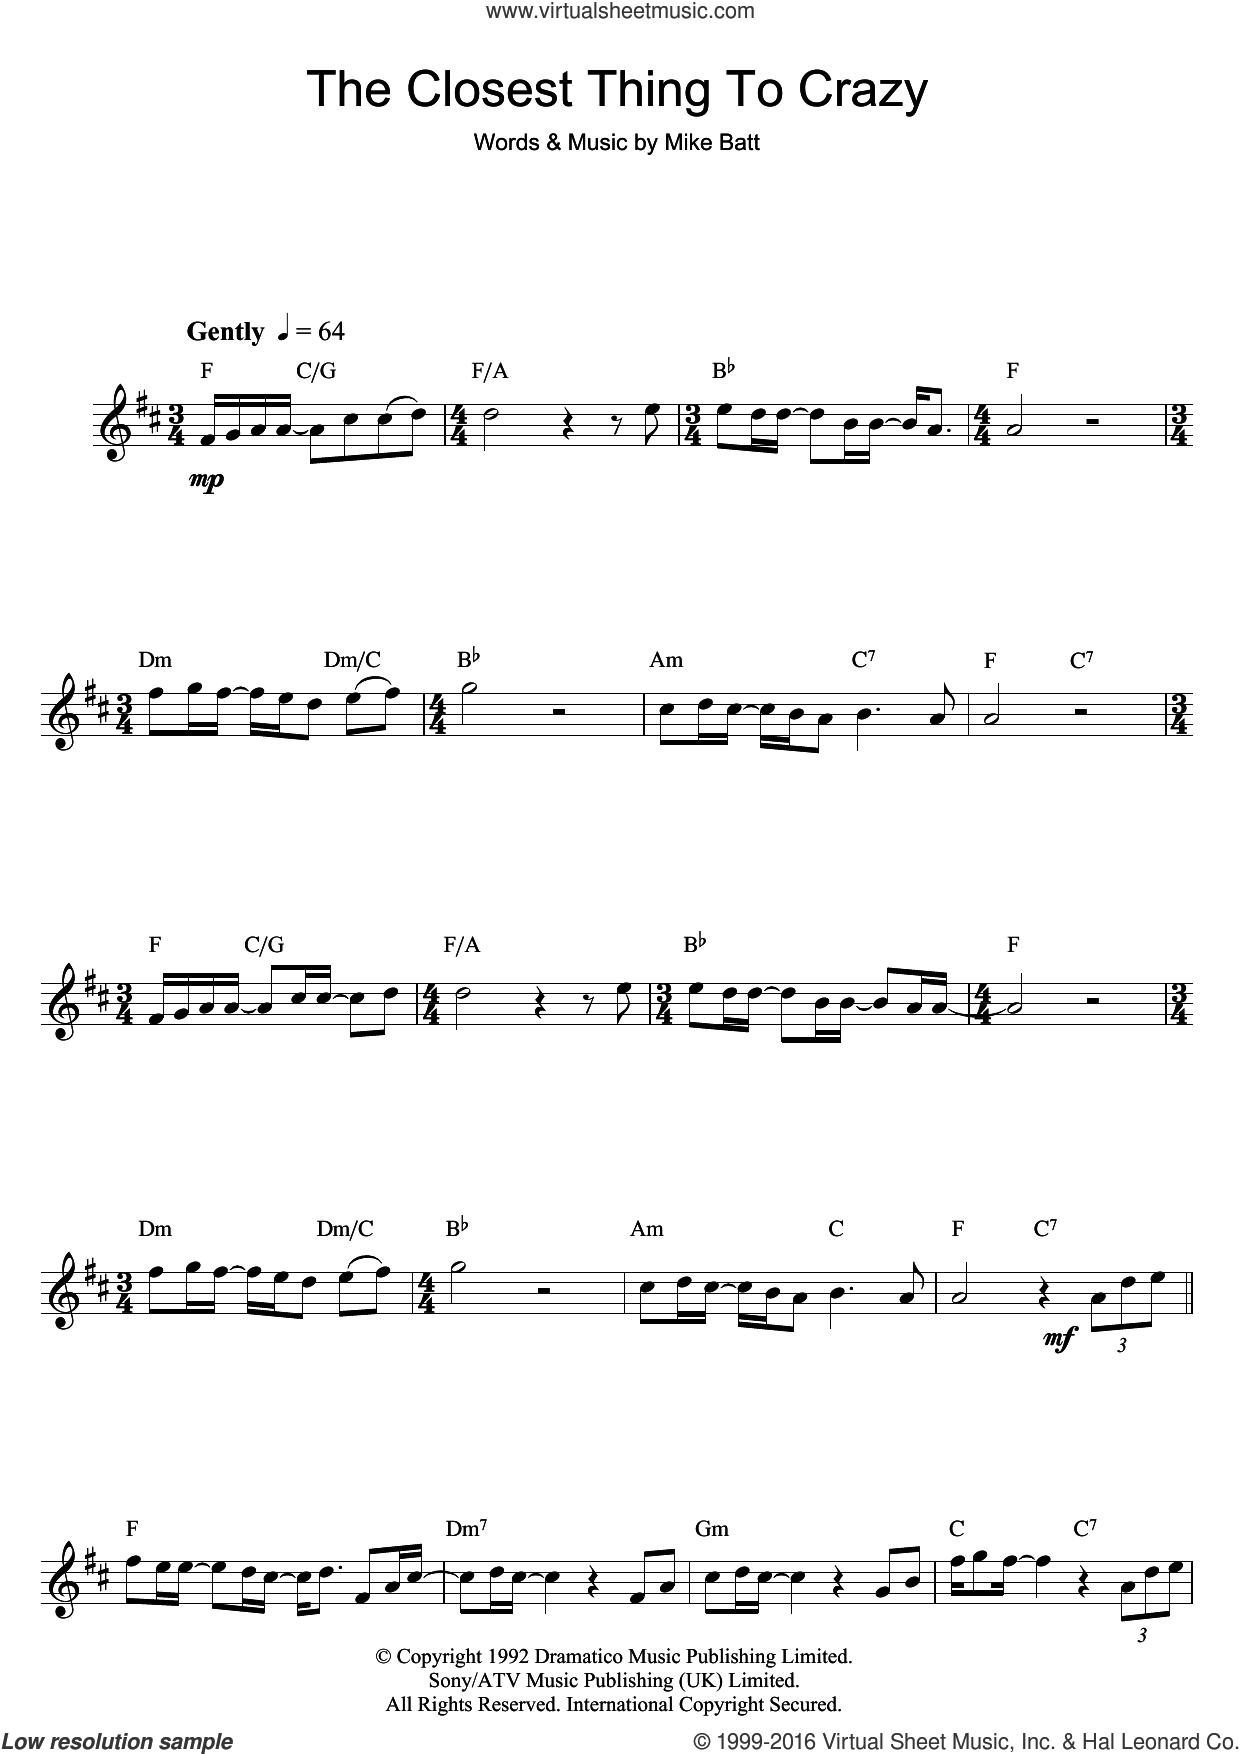 The Closest Thing To Crazy sheet music for saxophone solo by Mike Batt